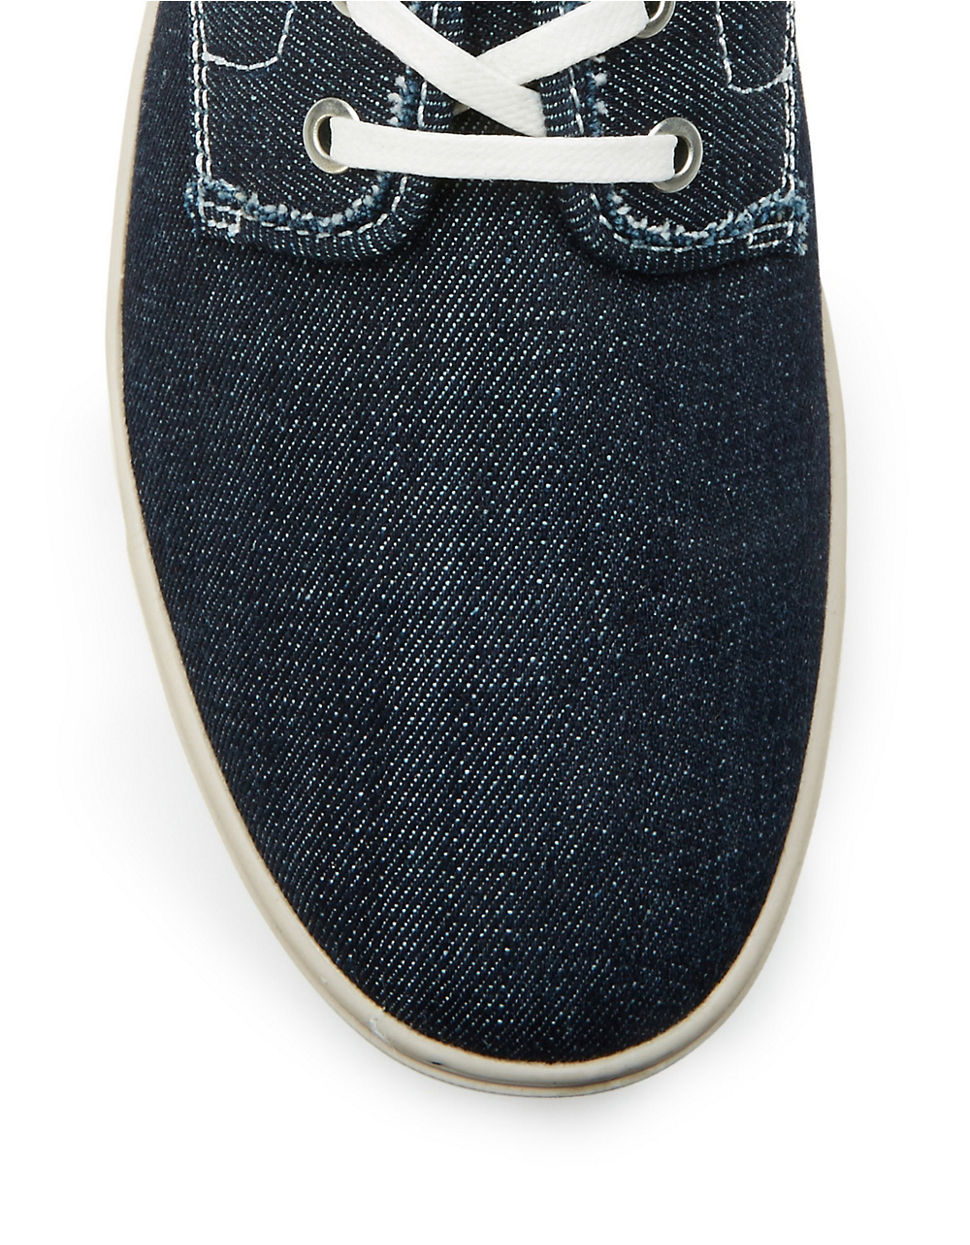 calvin klein zeus denim slip on sneakers in blue for men. Black Bedroom Furniture Sets. Home Design Ideas